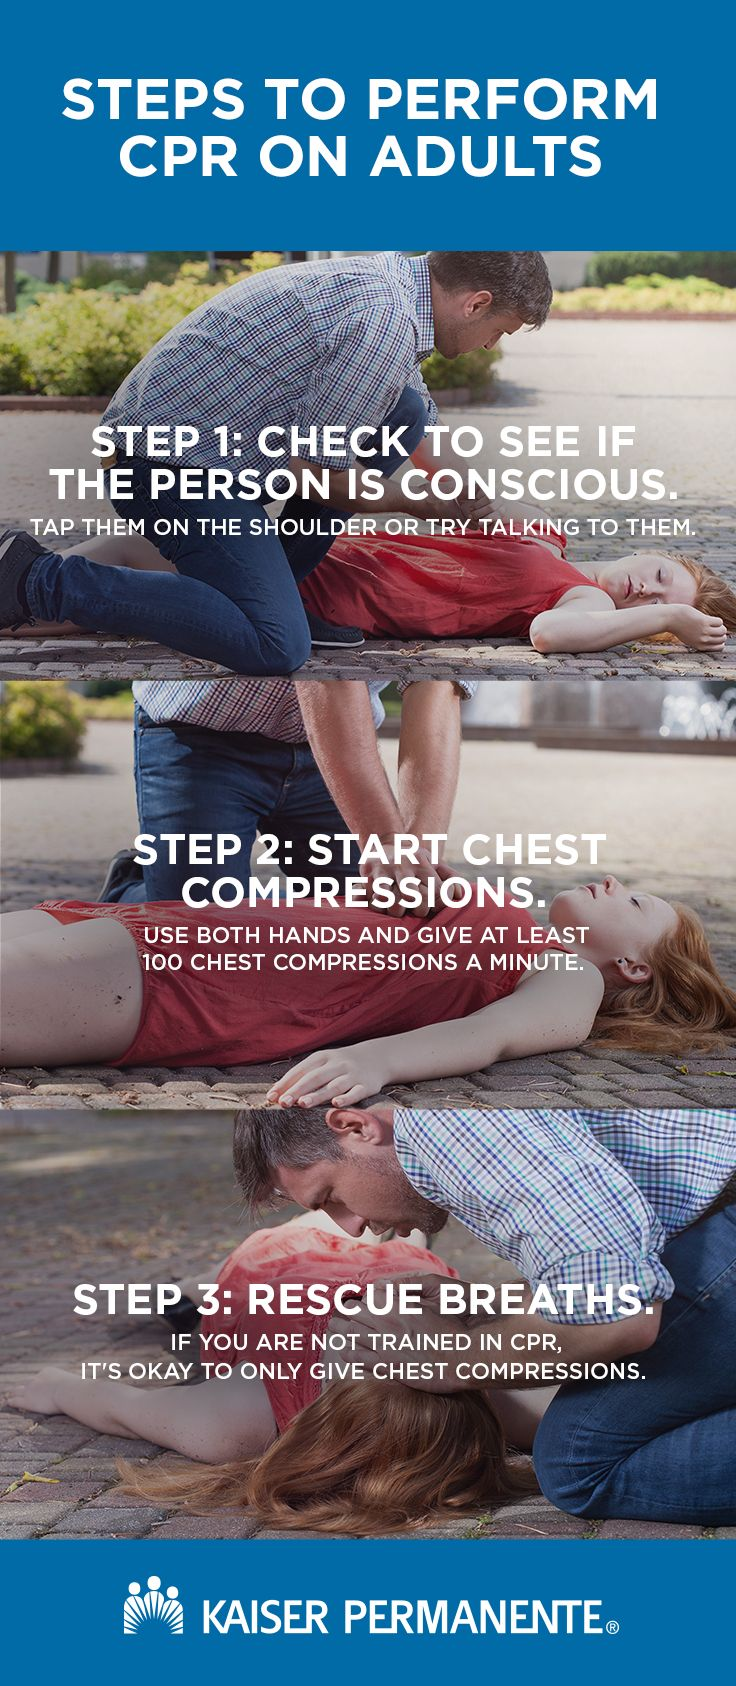 Cardiopulmonary resuscitation, or CPR, can help keep someone alive until a health professional arrives. Learn more information on performing CPR.